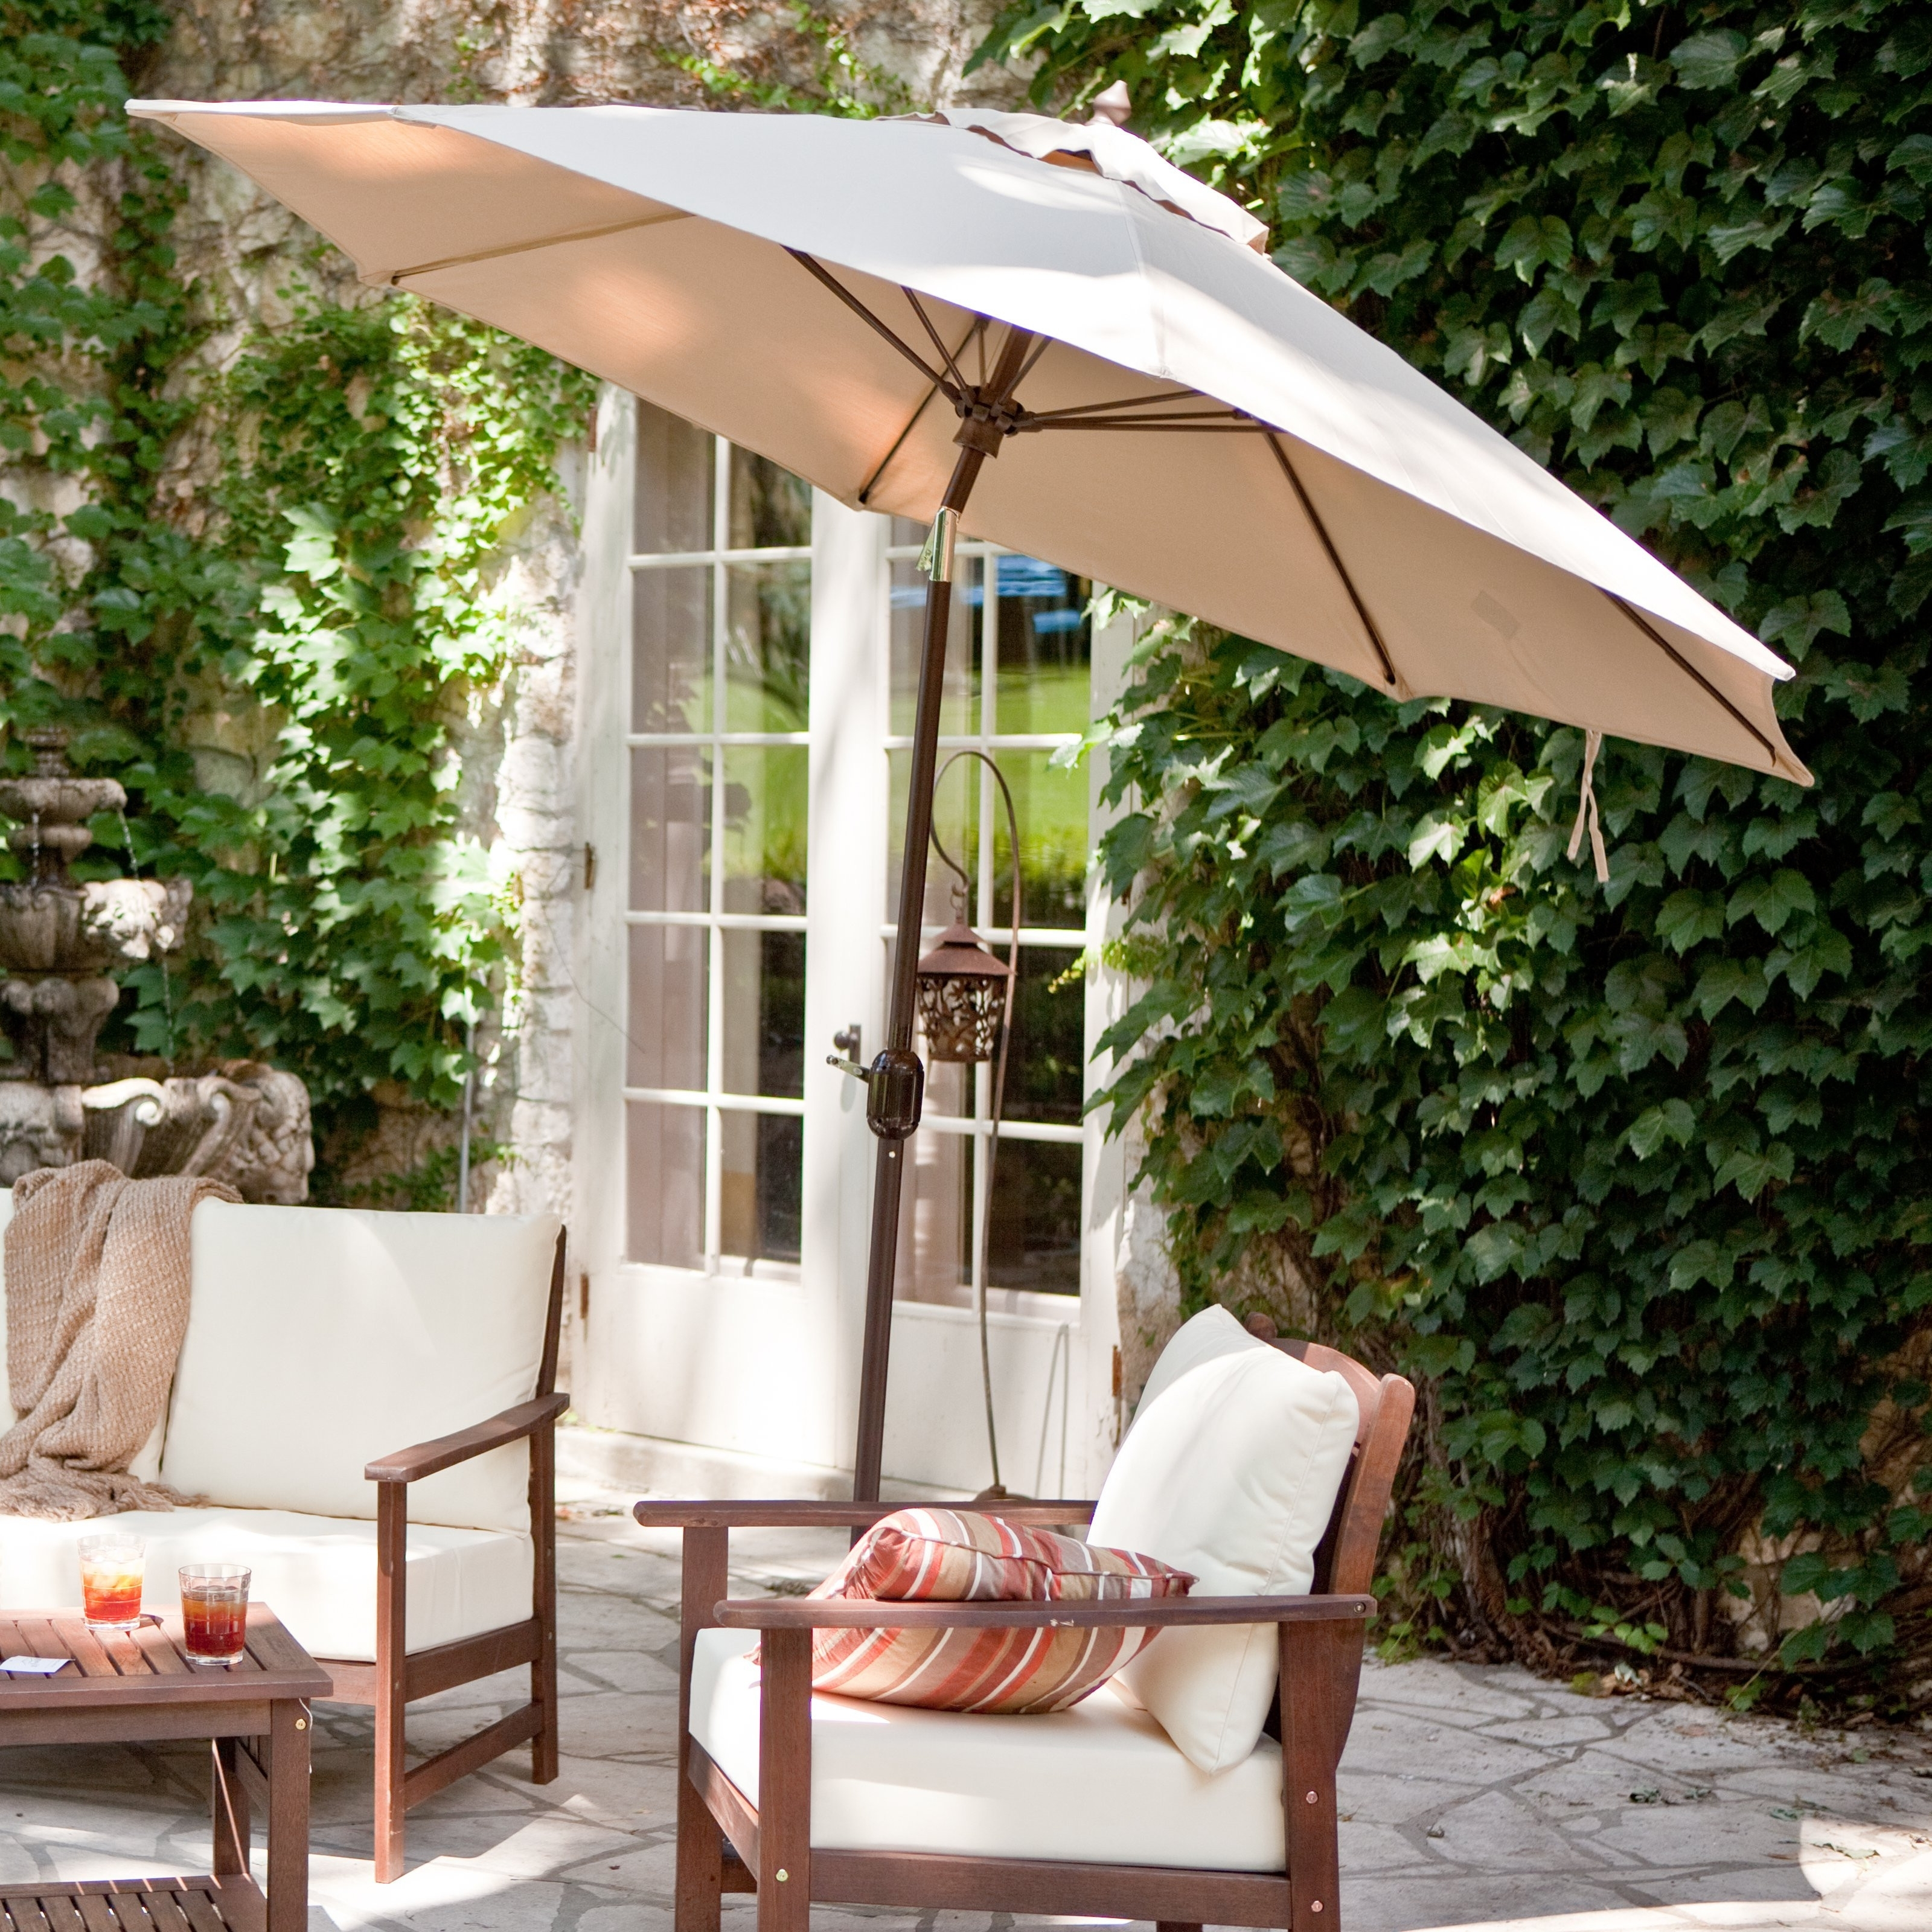 Small Patio Umbrellas Pertaining To Most Up To Date Patio Umbrellas Big Lots Luxury Small Patio Furniture Sets Umbrella (View 16 of 20)